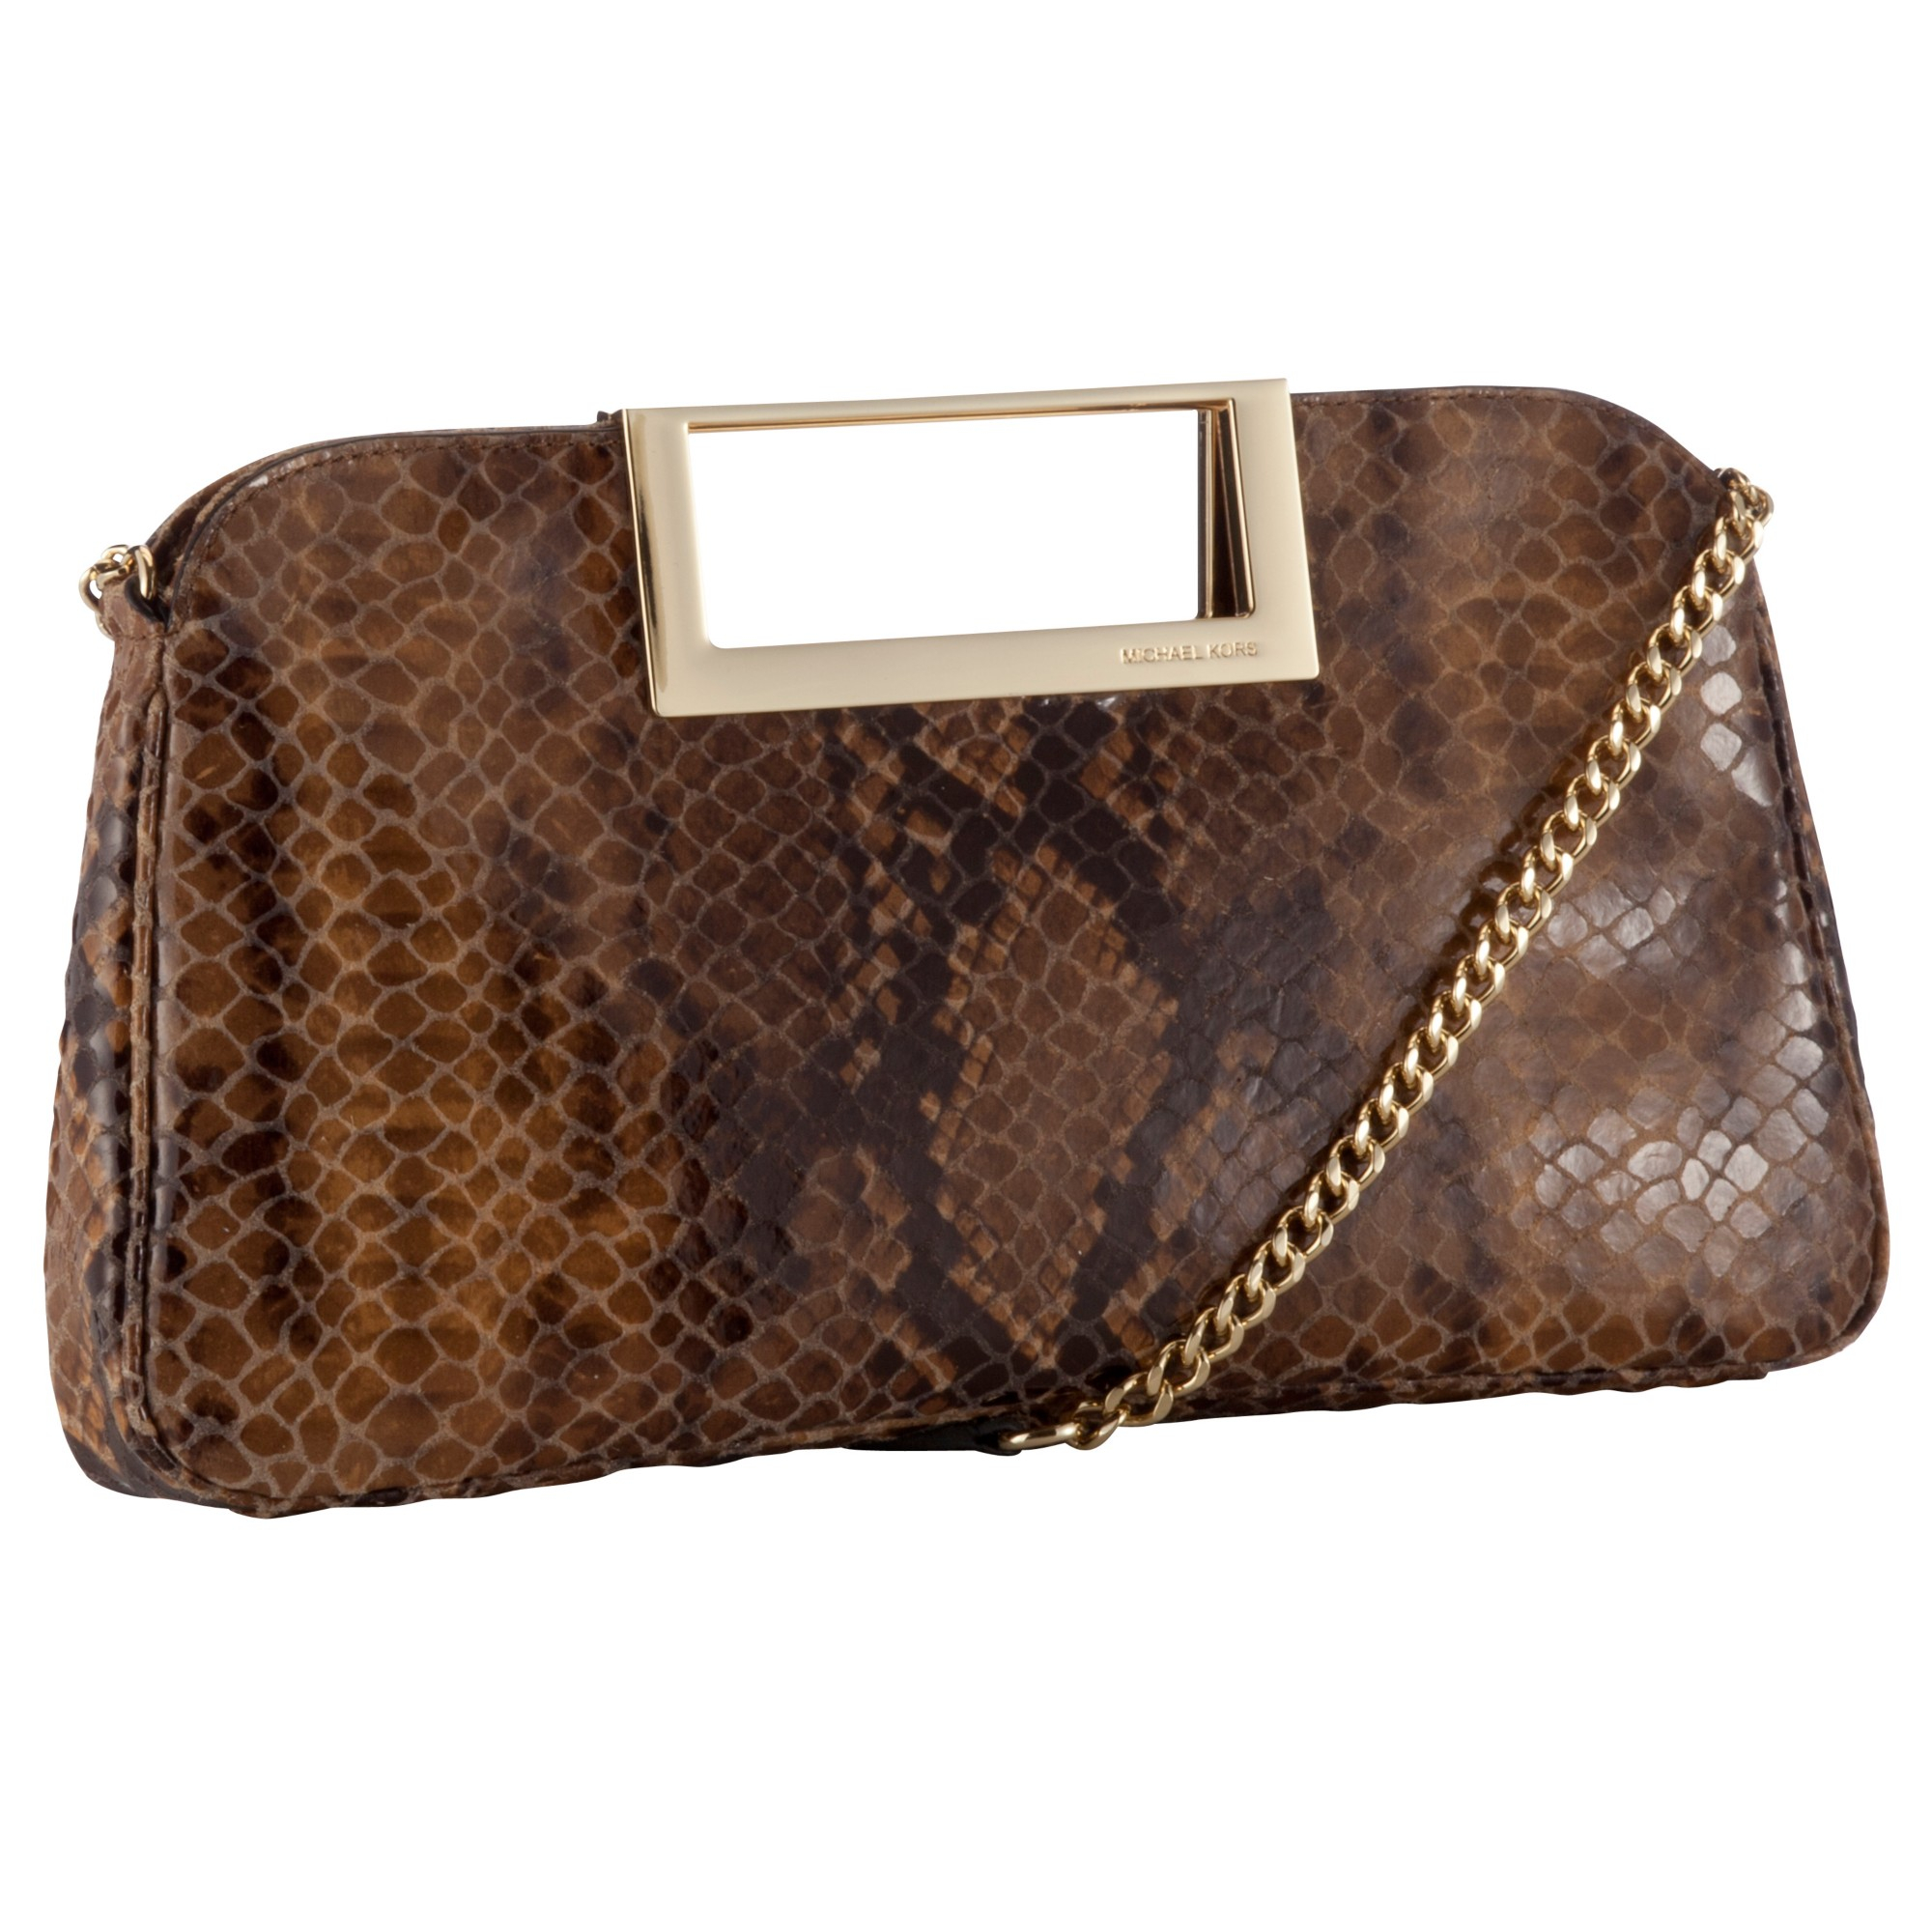 michael michael kors michael micheal kors berkley leather large clutch handbag in brown tan python. Black Bedroom Furniture Sets. Home Design Ideas